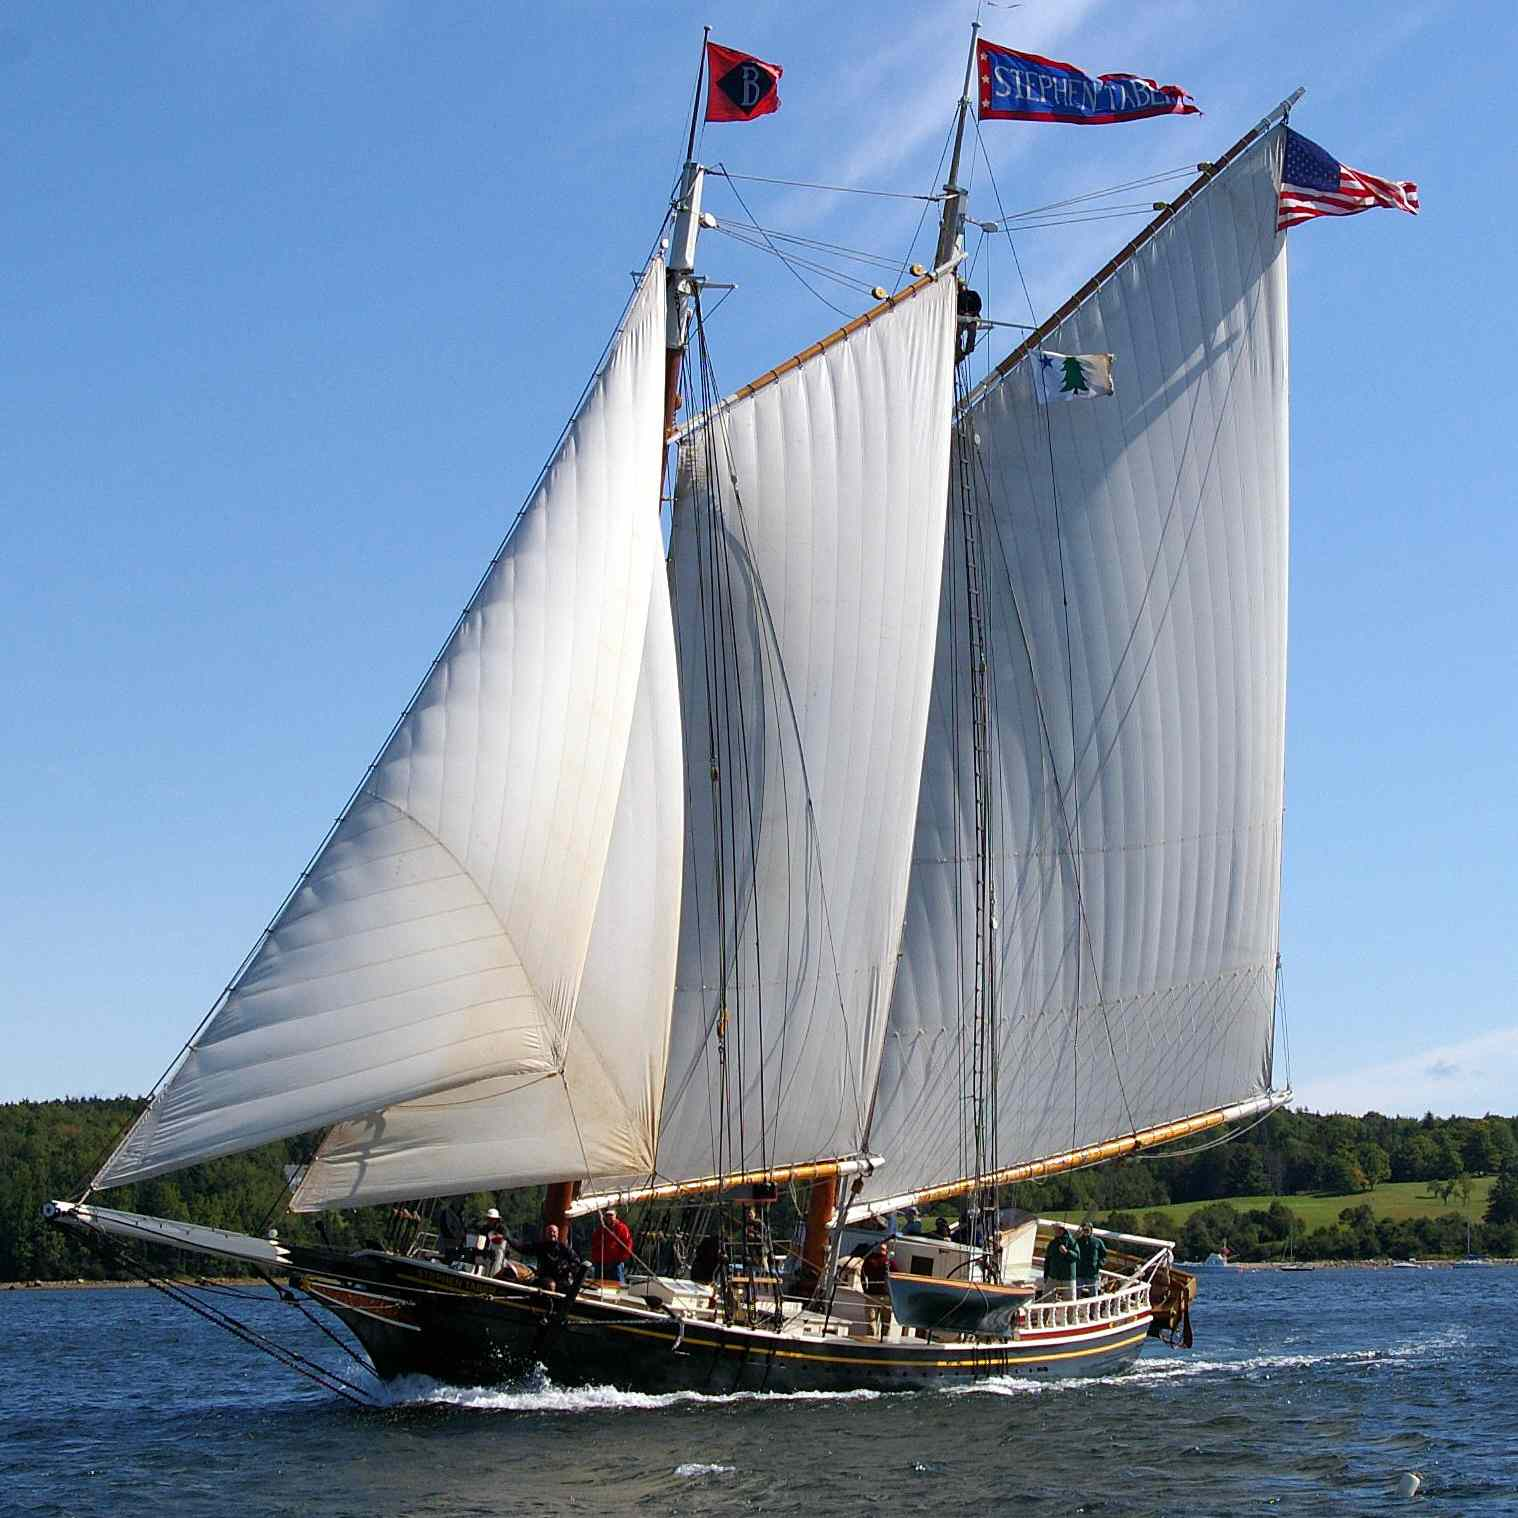 The Windjammer Stephen Taber sailing out of Maine